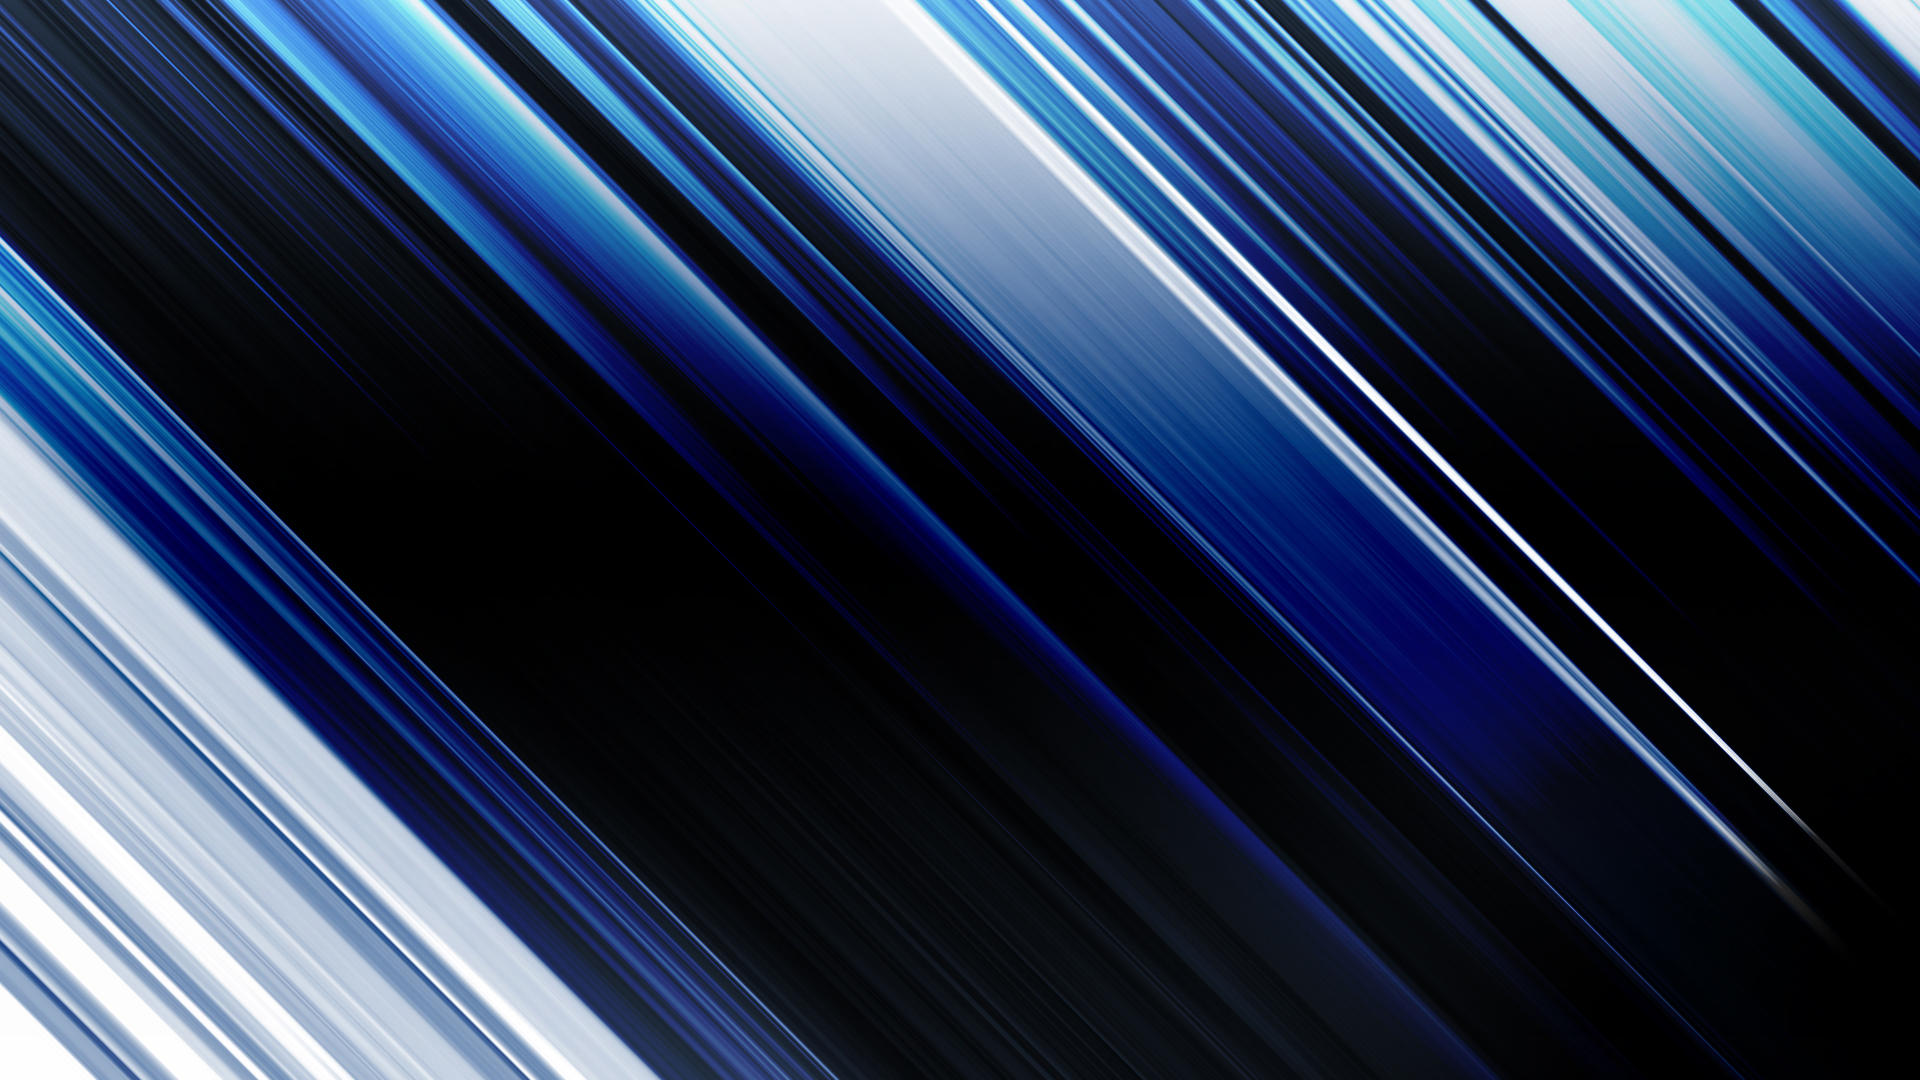 Sony Vaio Abstract Source 1920x1080px Wallpaper Downloads WallpaperSafari Laptop Download 3175 Cool 1920x1080